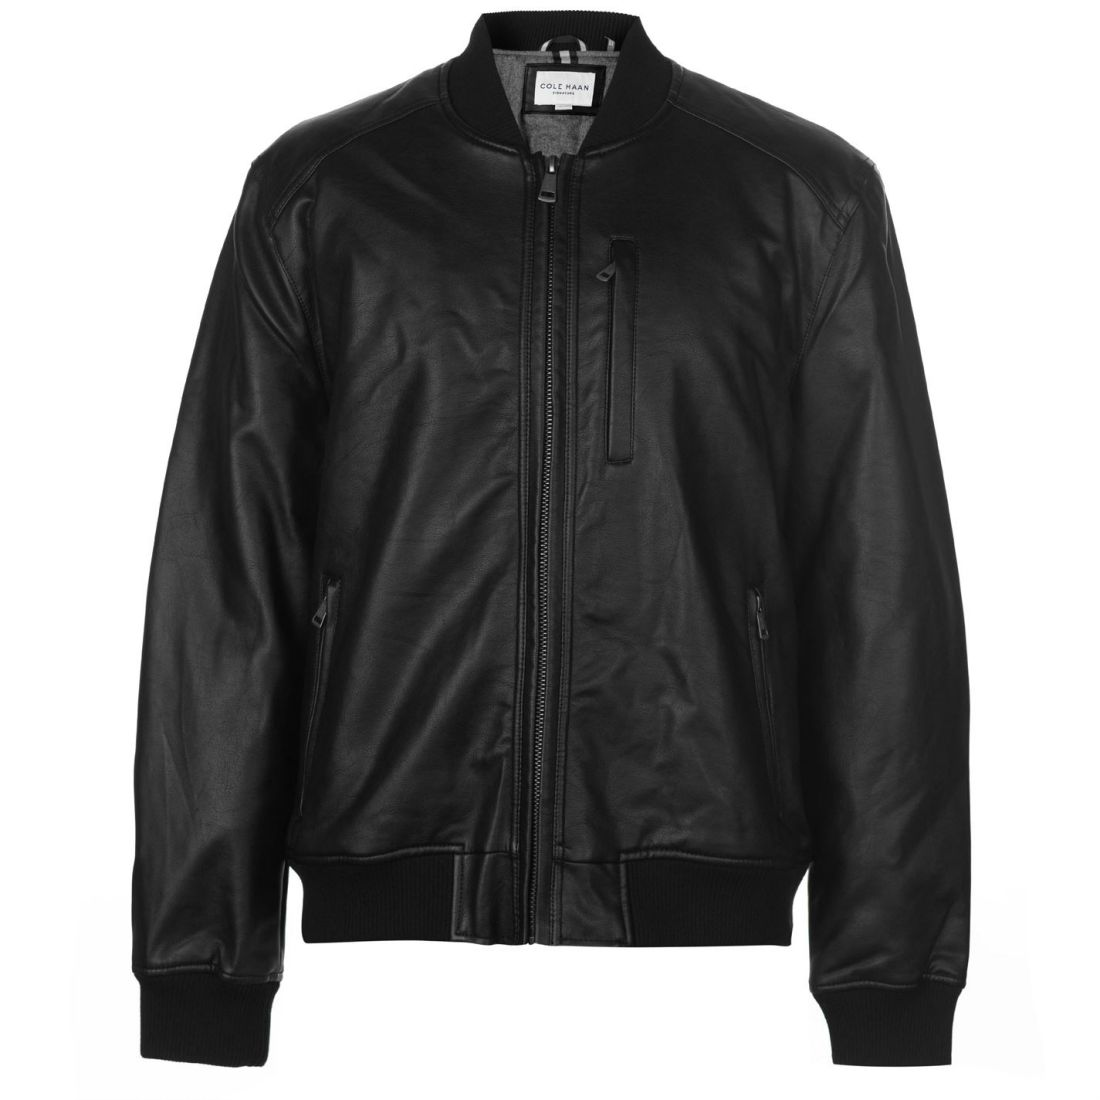 f97540eae Details about Cole Haan Mens Bomber Jacket Leather PU Coat Top Lightweight  Zip Full Insulated